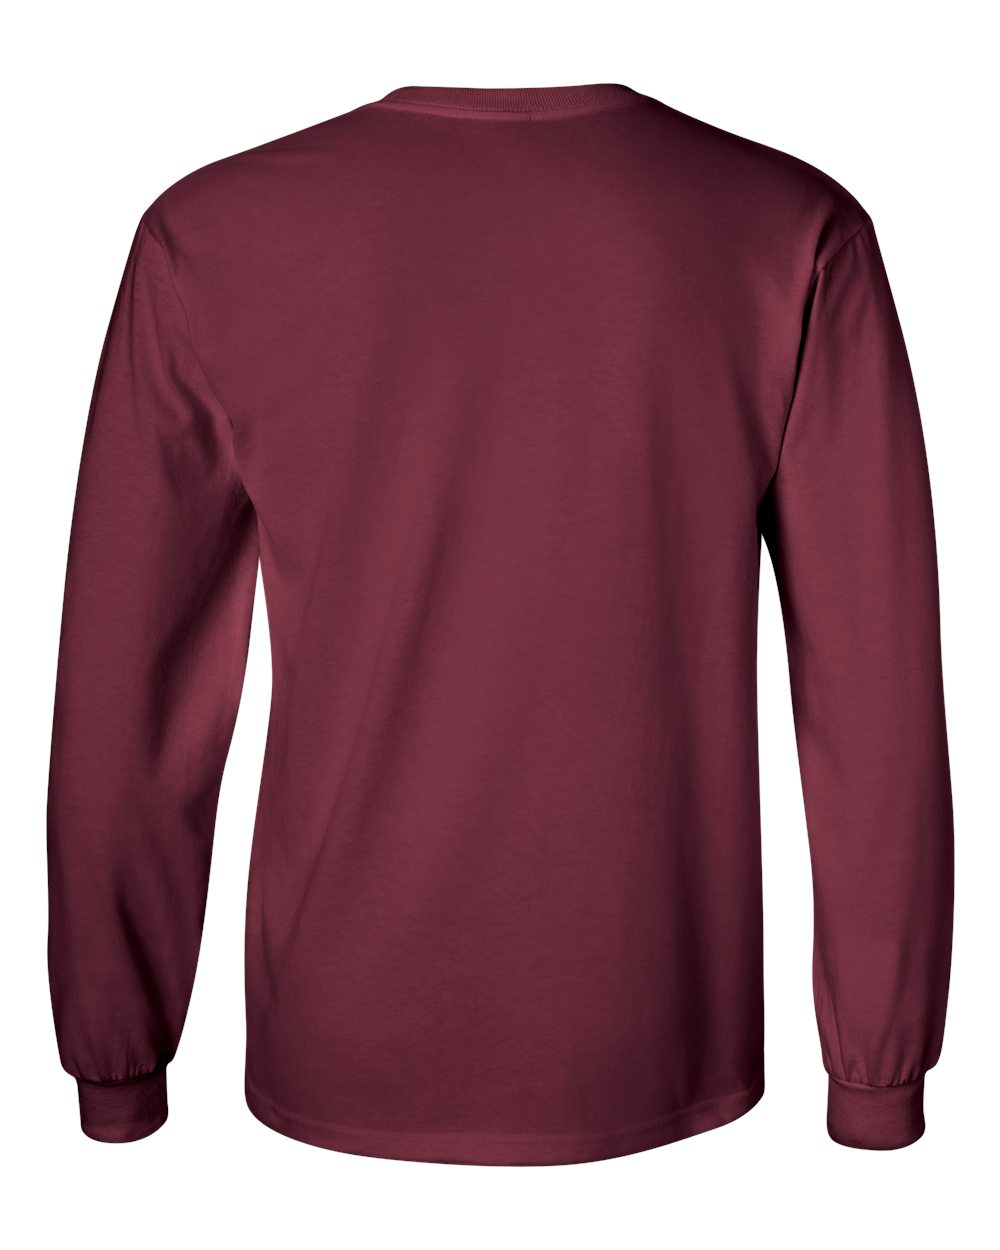 Gildan-Men-039-s-Ultra-Cotton-6-oz-Long-Sleeve-T-Shirt-G240-S-5XL thumbnail 56